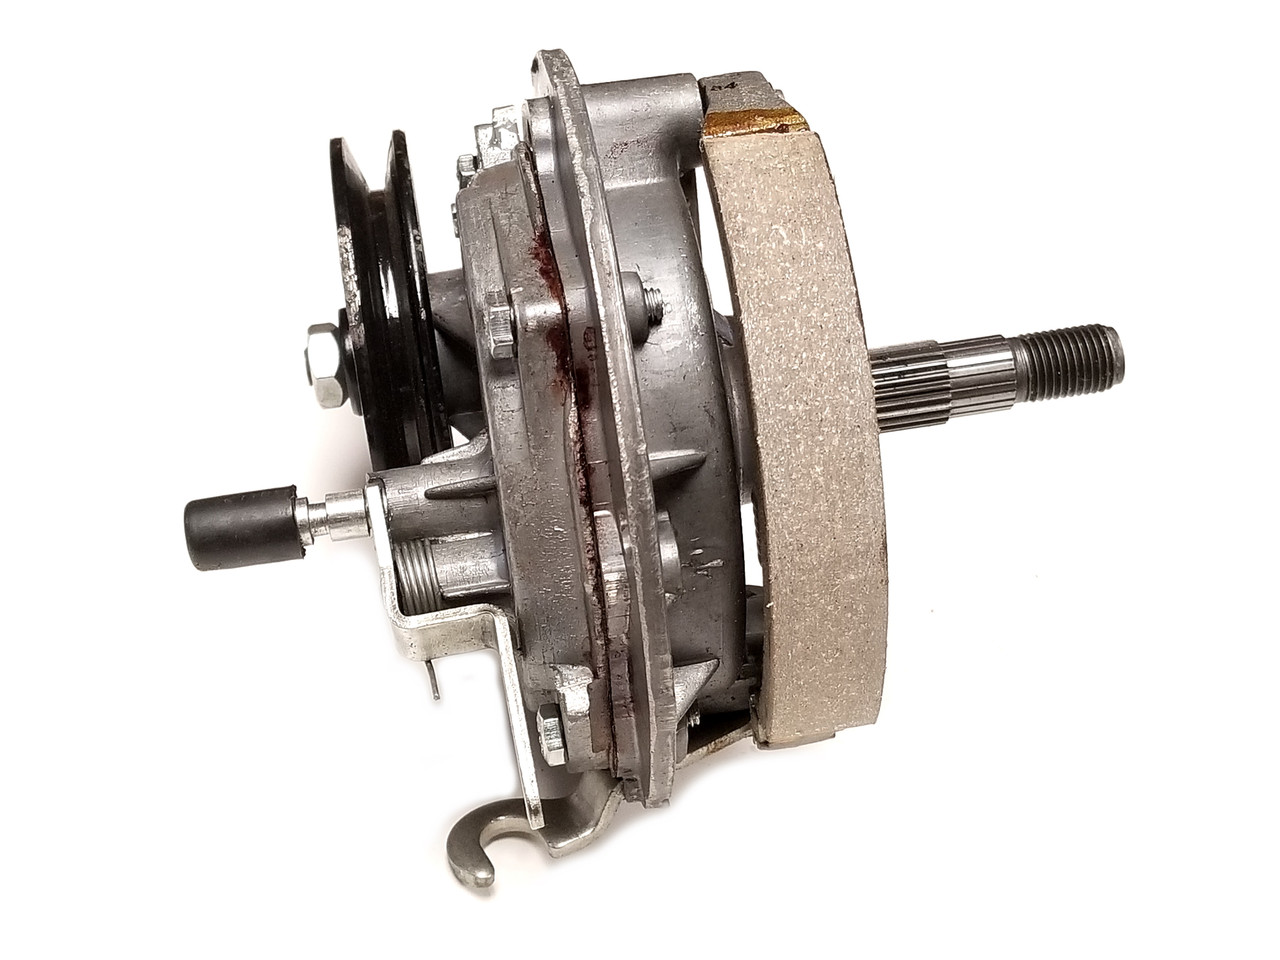 Original Kinetic NON - Variated Transmission Gear Box